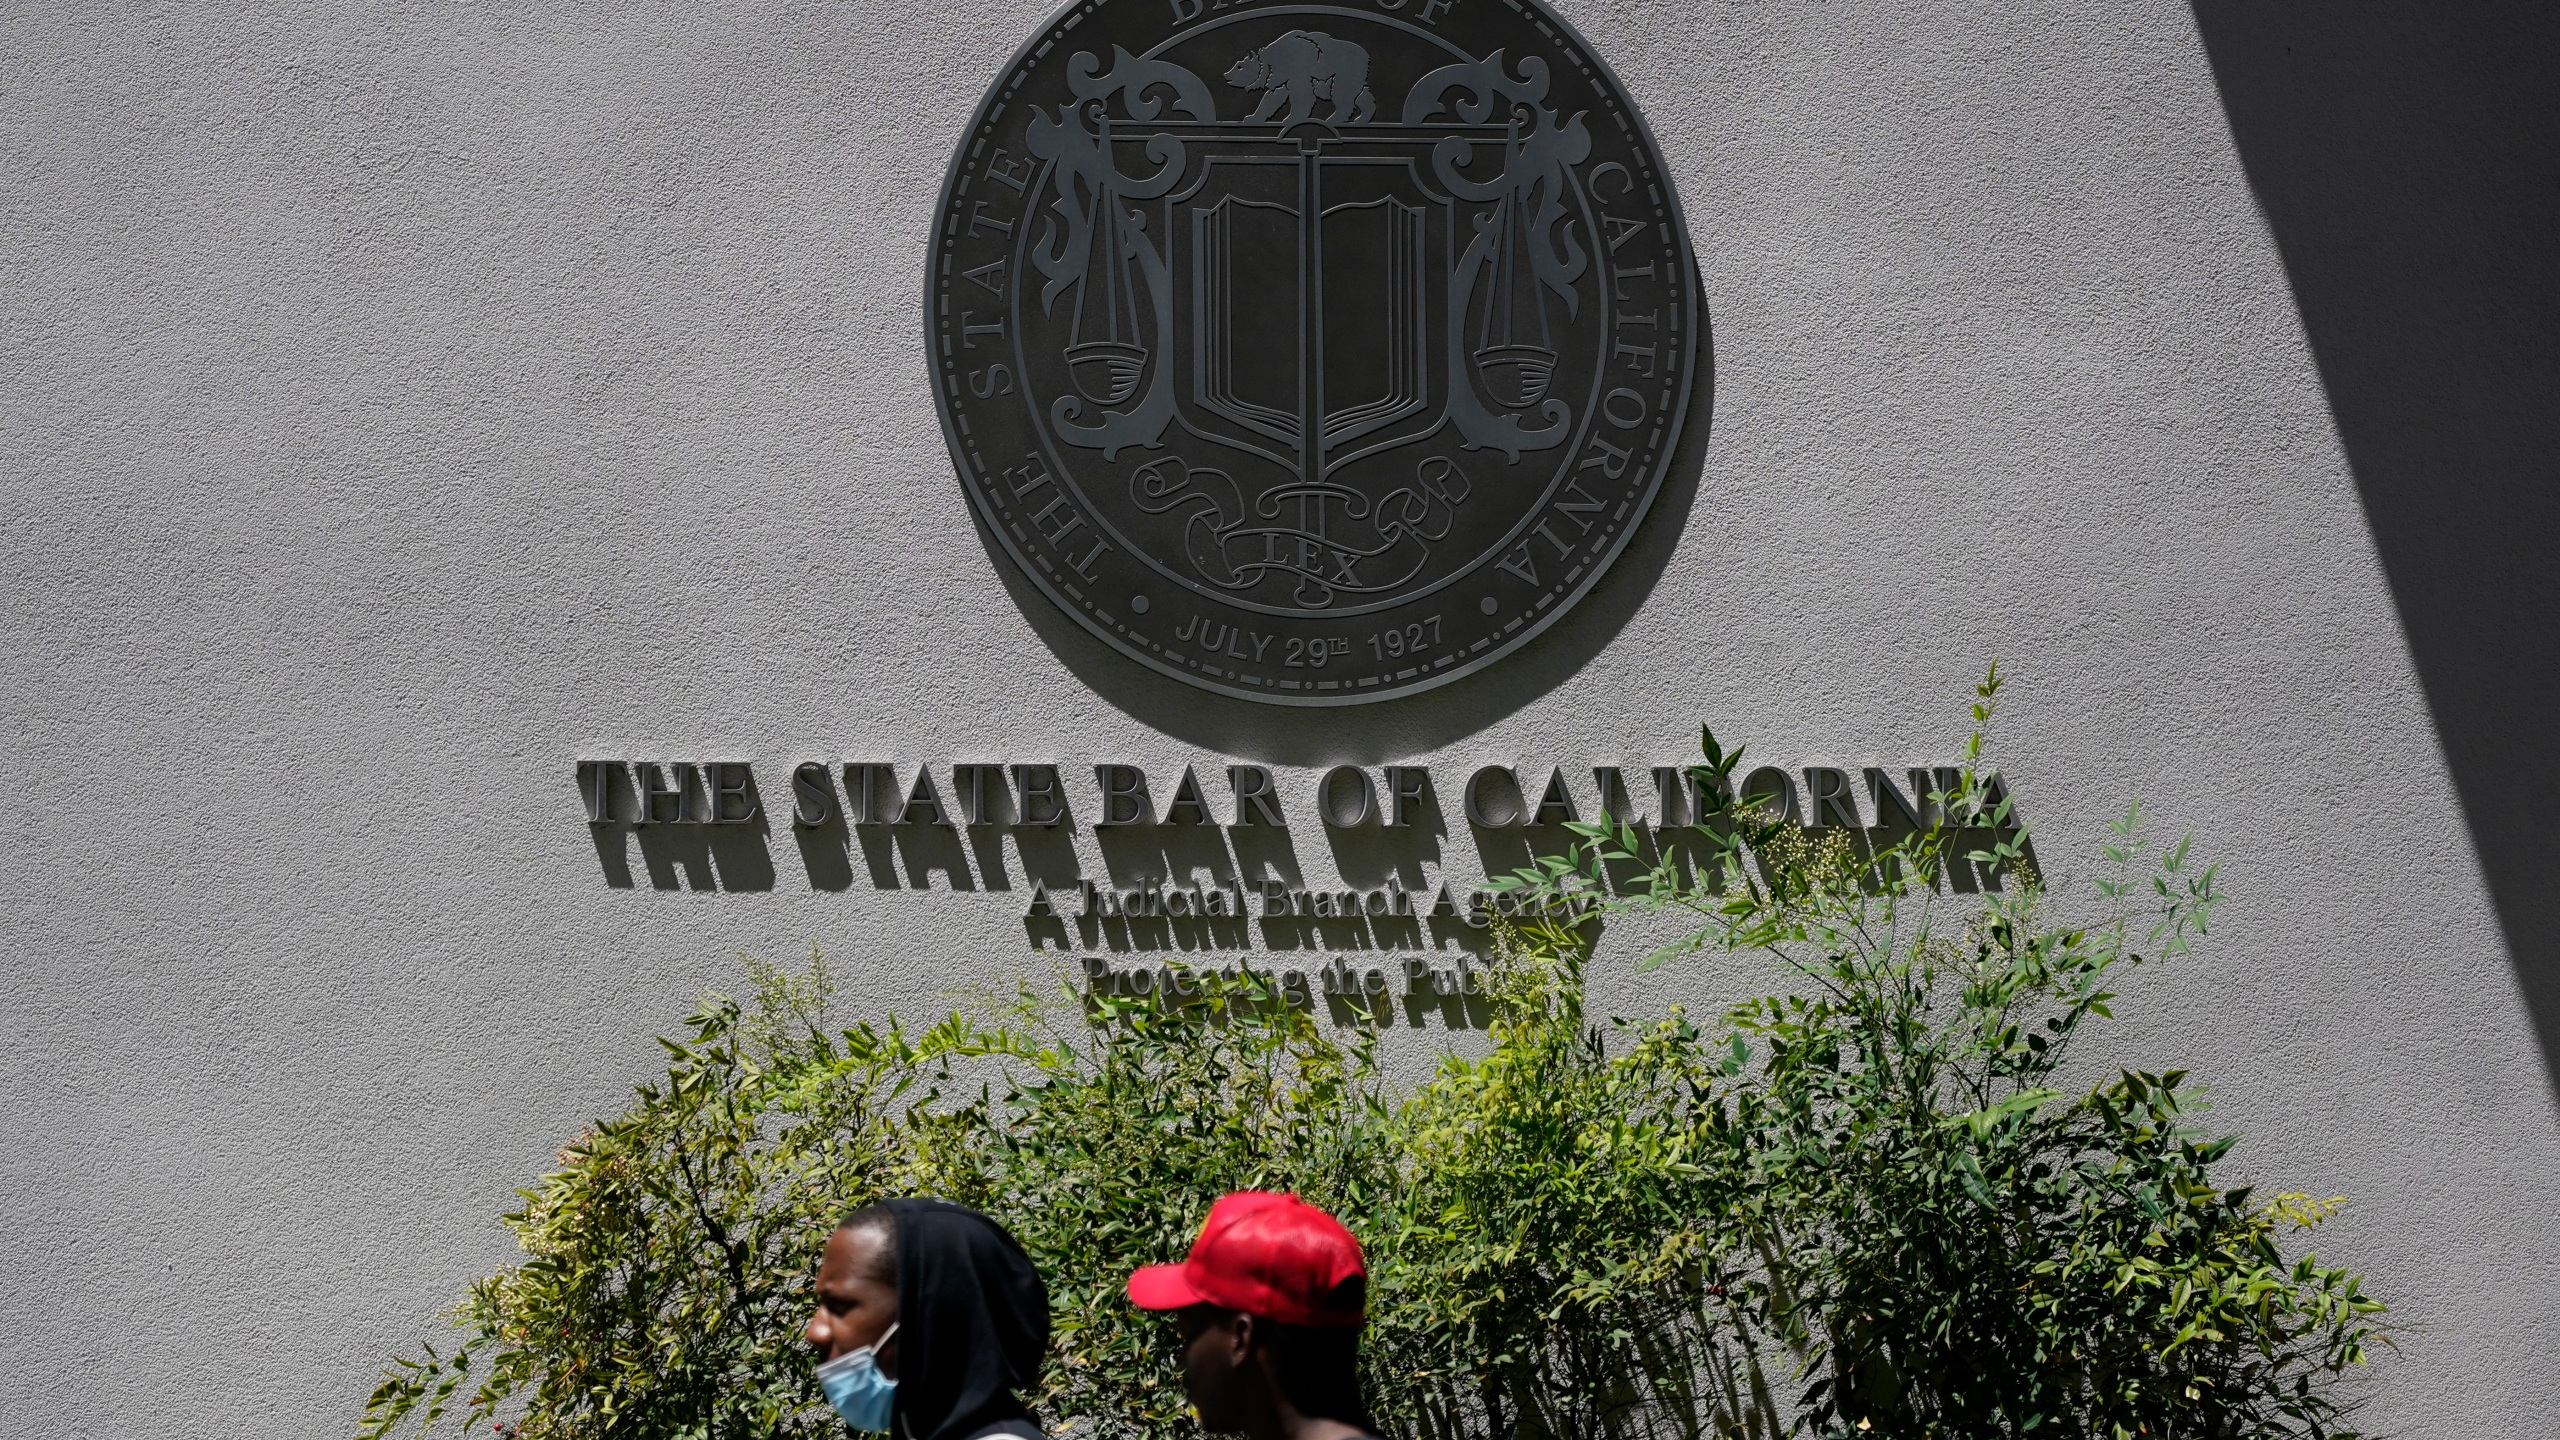 People walk past the entrance of The State Bar of California office Thursday, April 29, 2021, in Los Angeles. (AP Photo/Ashley Landis)